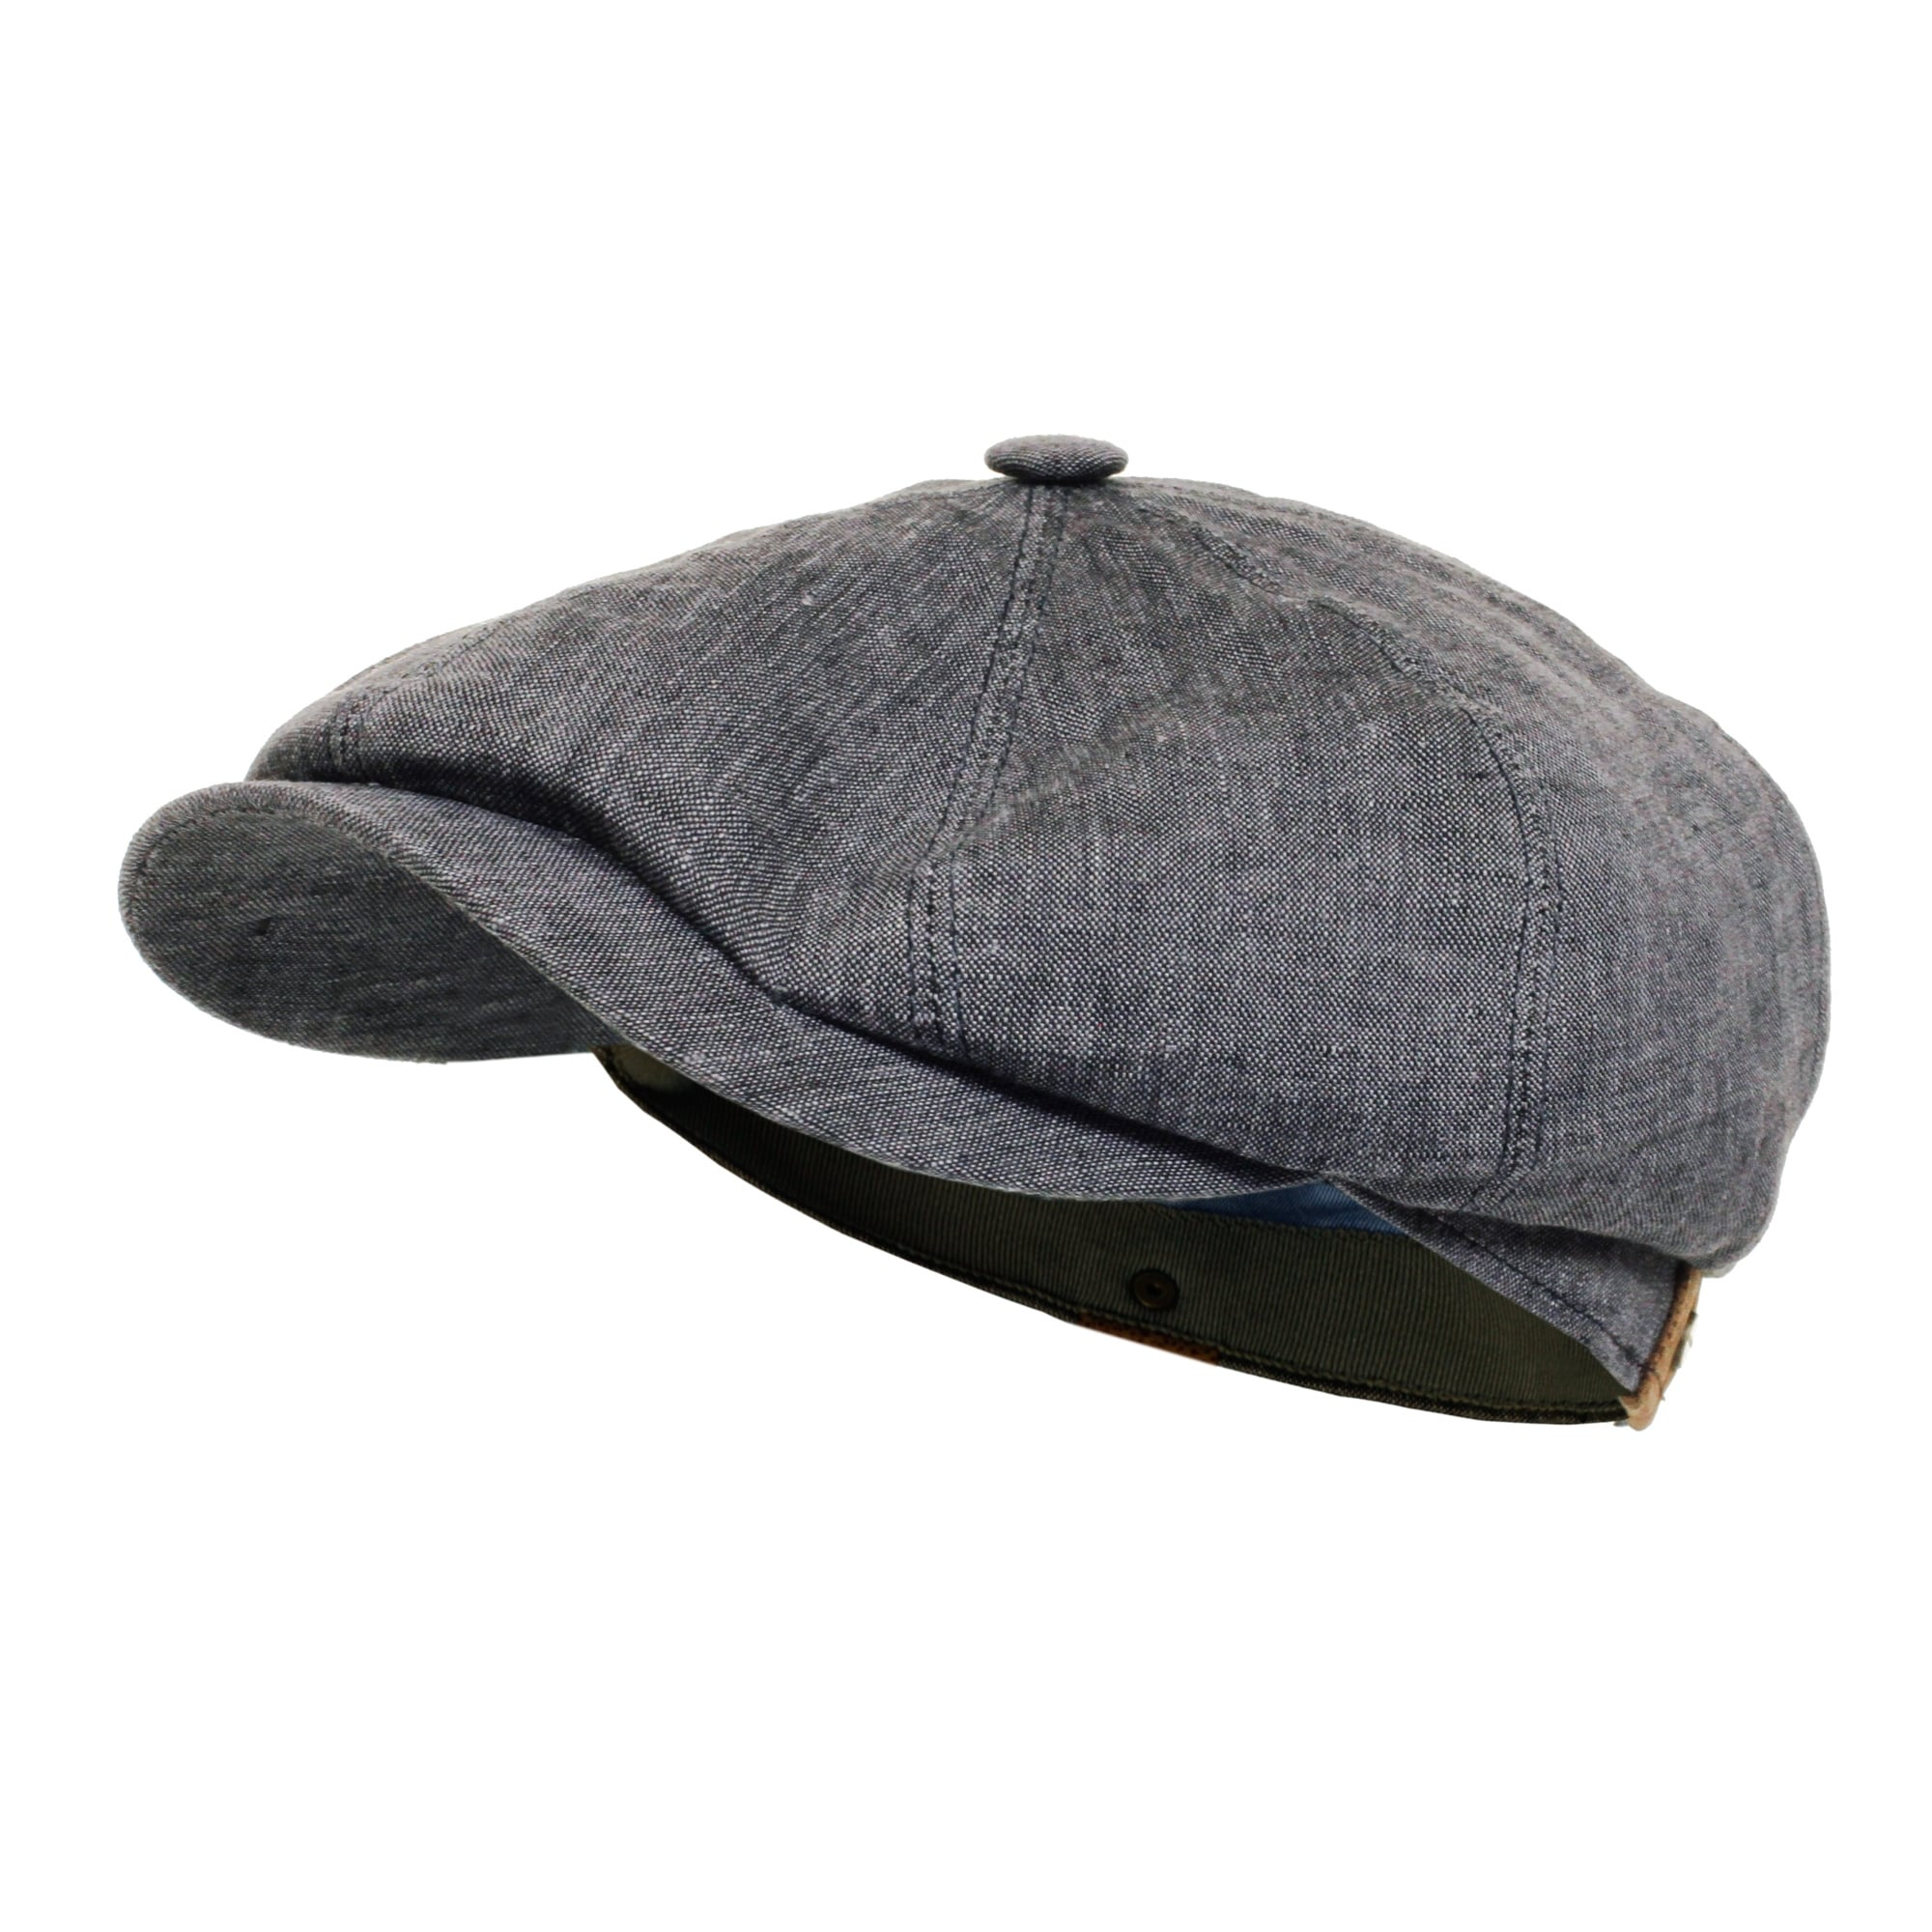 100/% Linen Newsboy Cap Black One Size